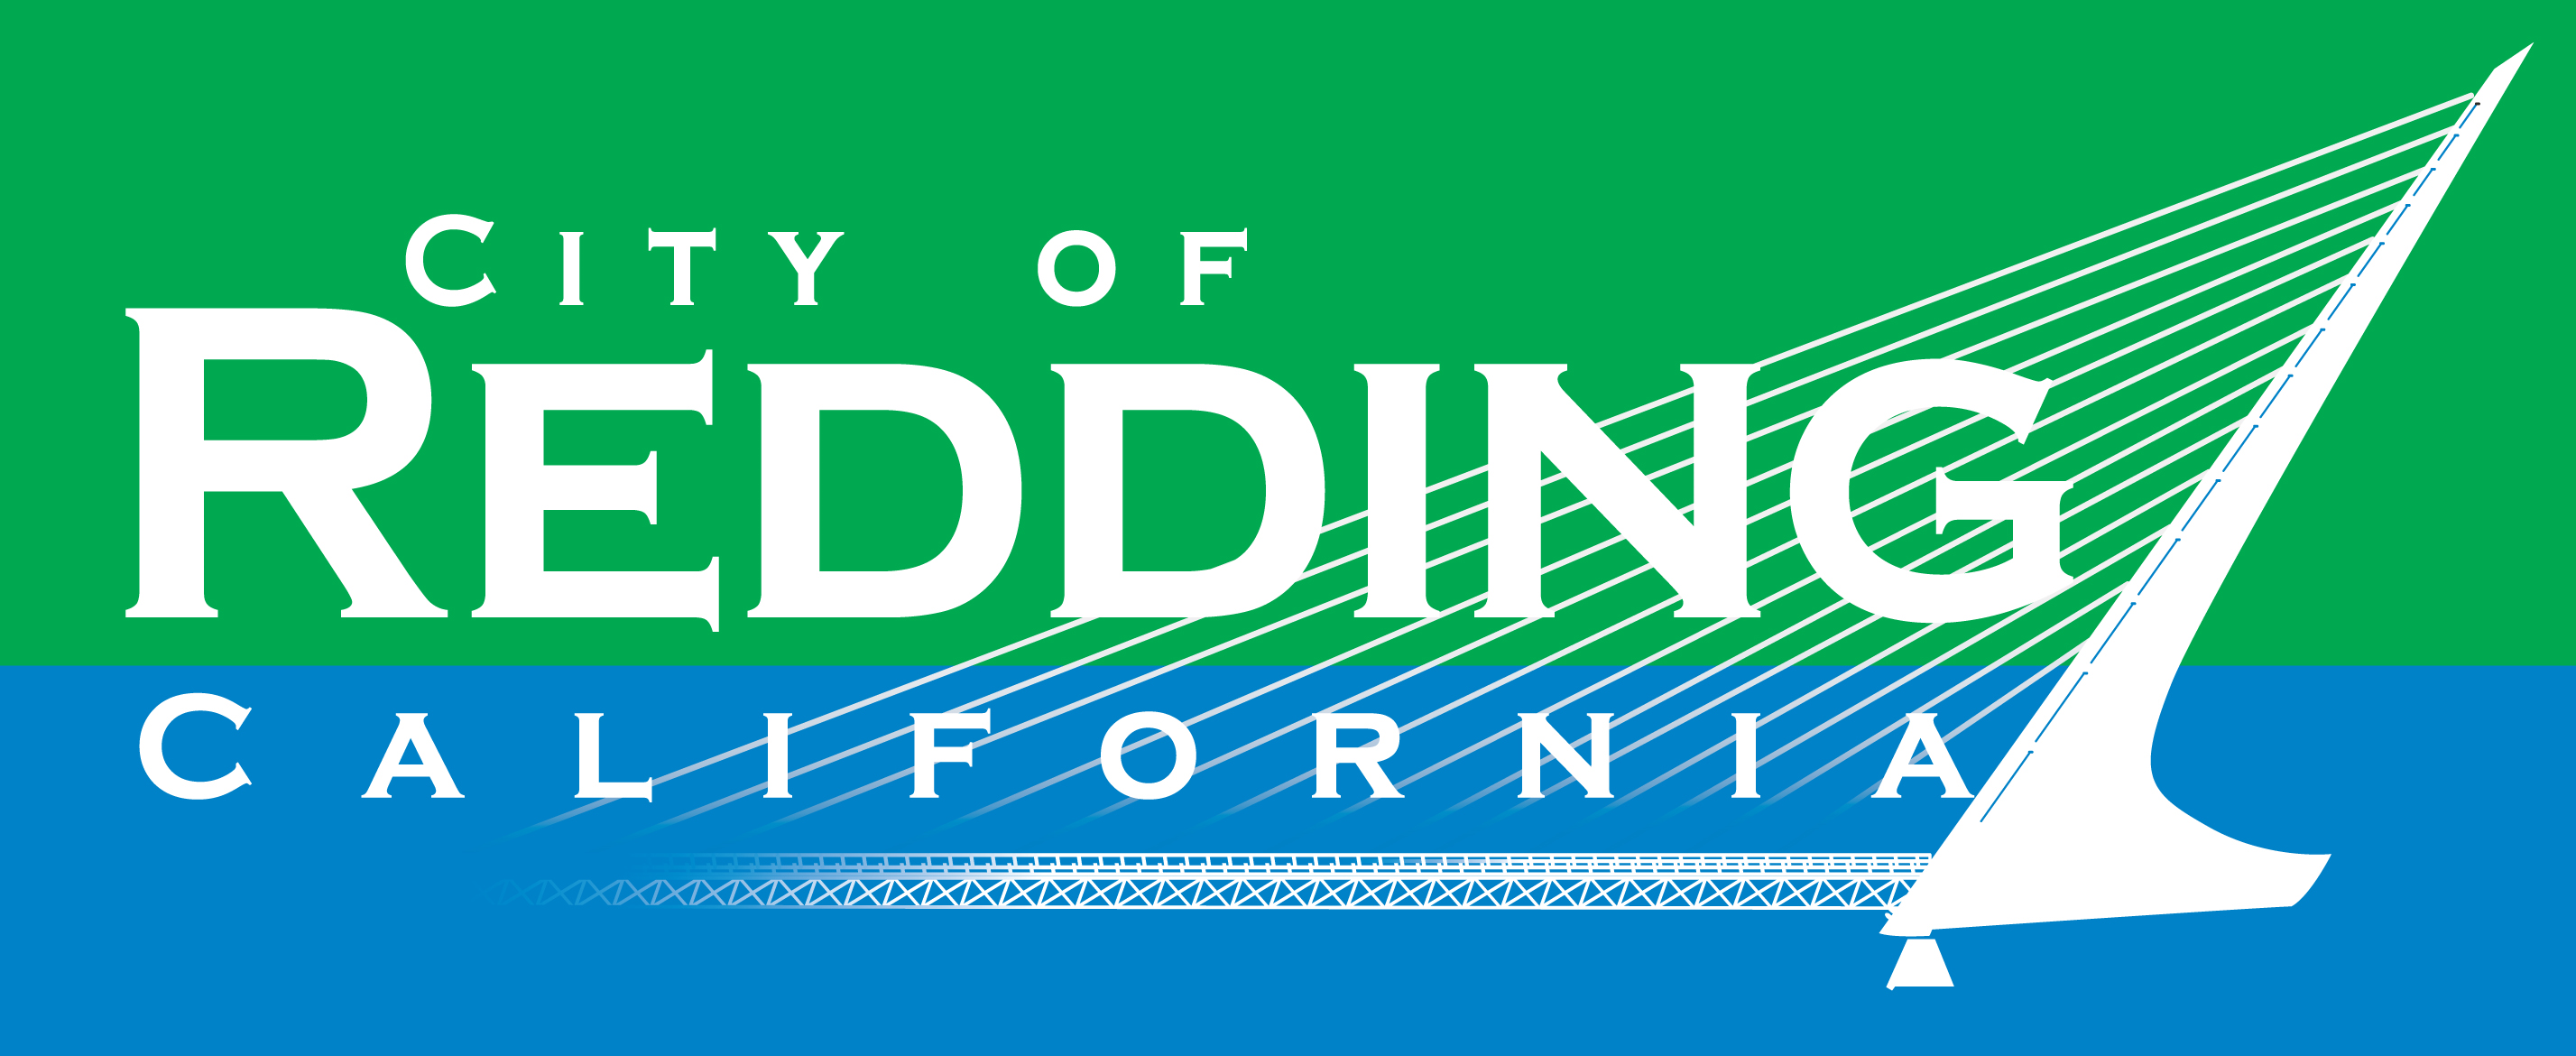 City of Redding logo - links to building documents